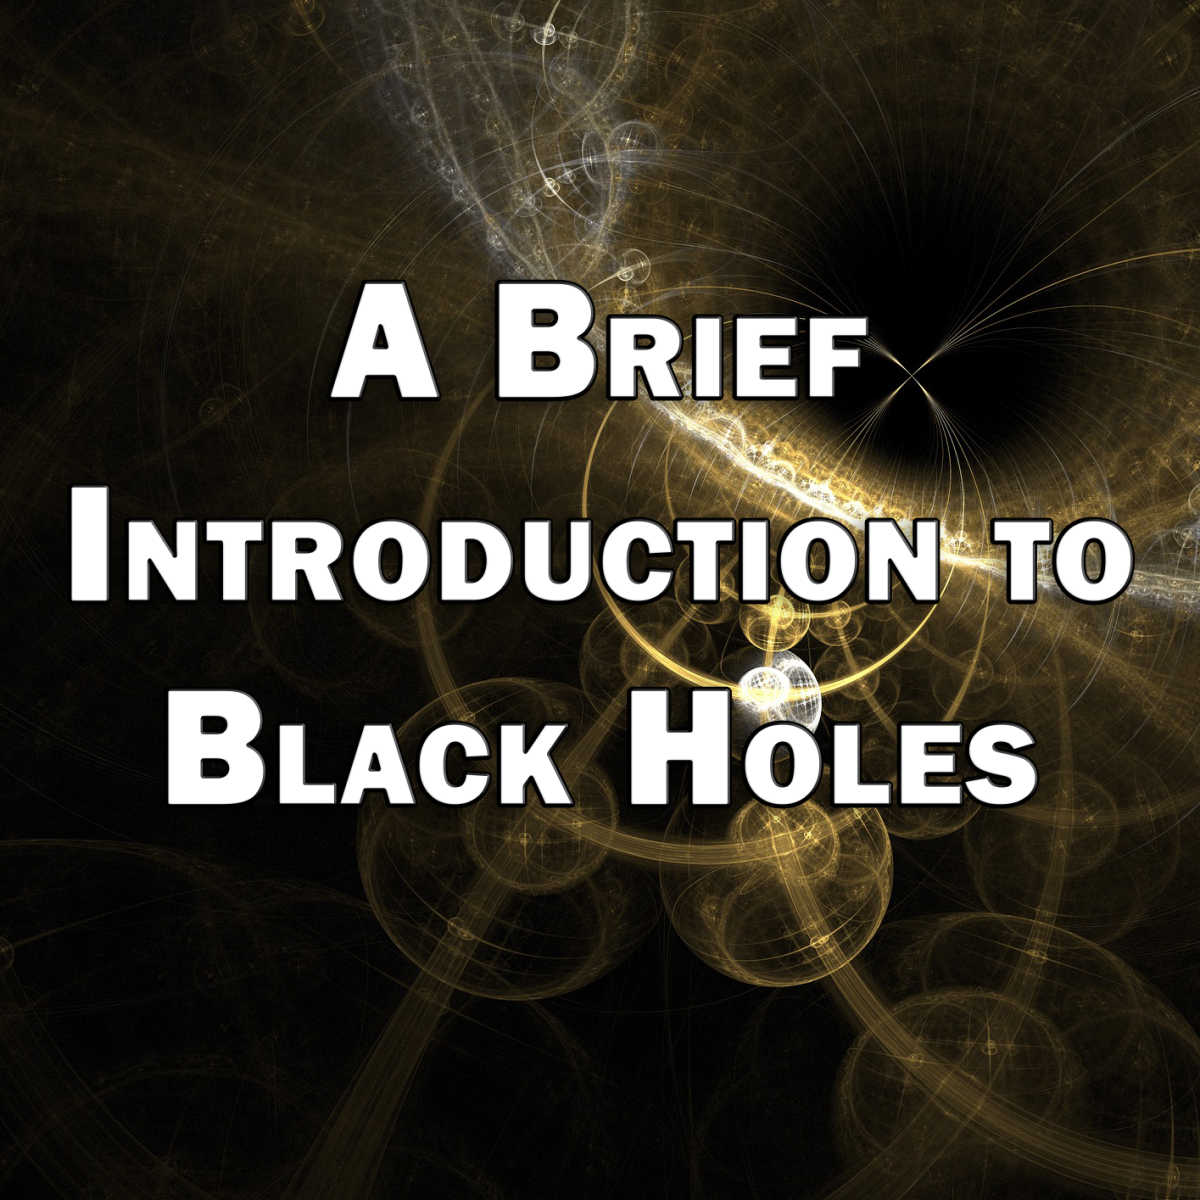 A Brief Introduction to Black Holes: What Are They and Where Did They Come From?